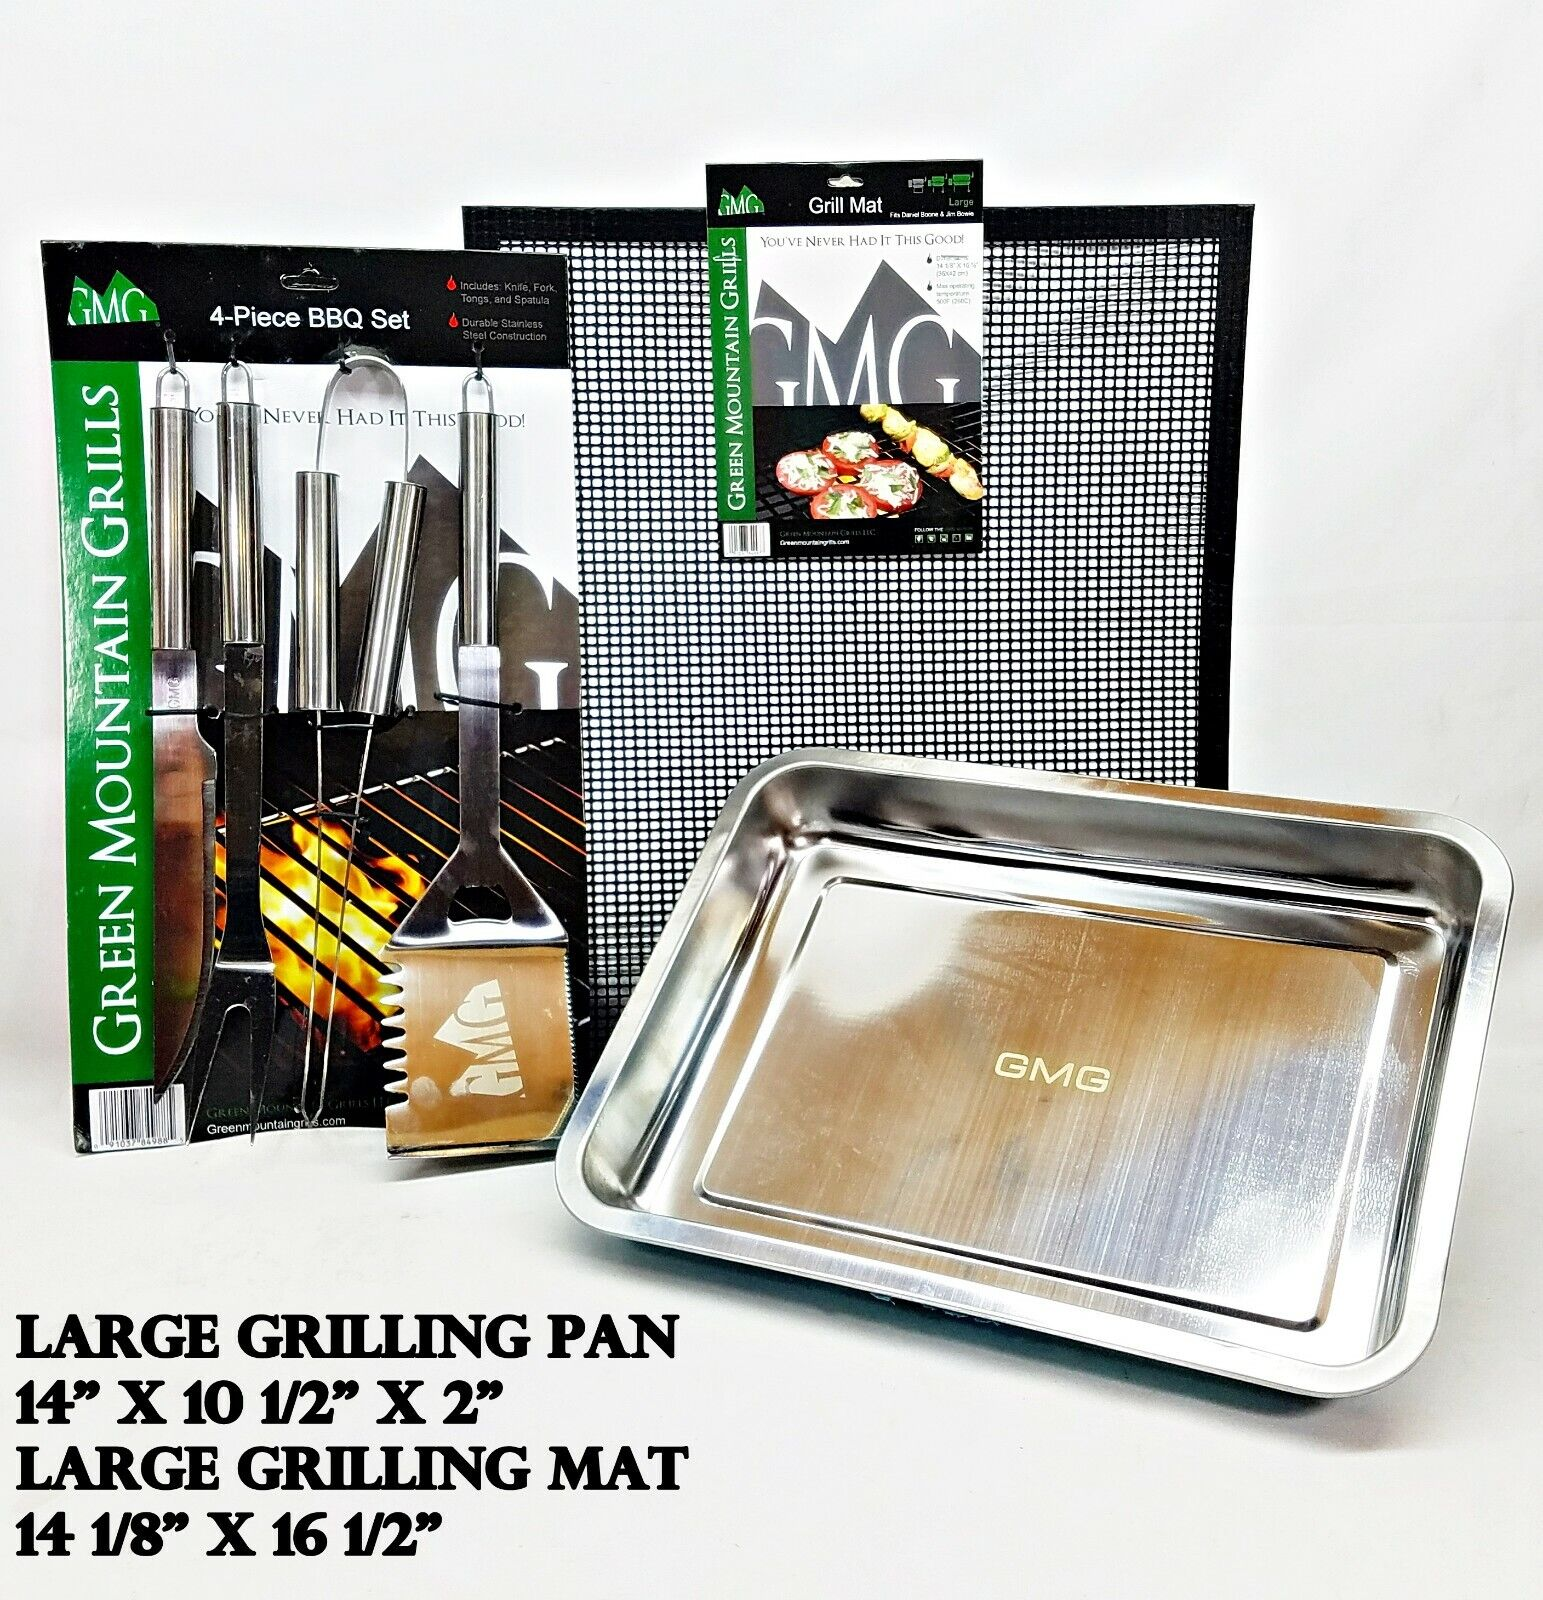 GREEN MOUNTAIN GRILL, GMG ACCESSORY PACKAGE, LARGE MAT, LARG